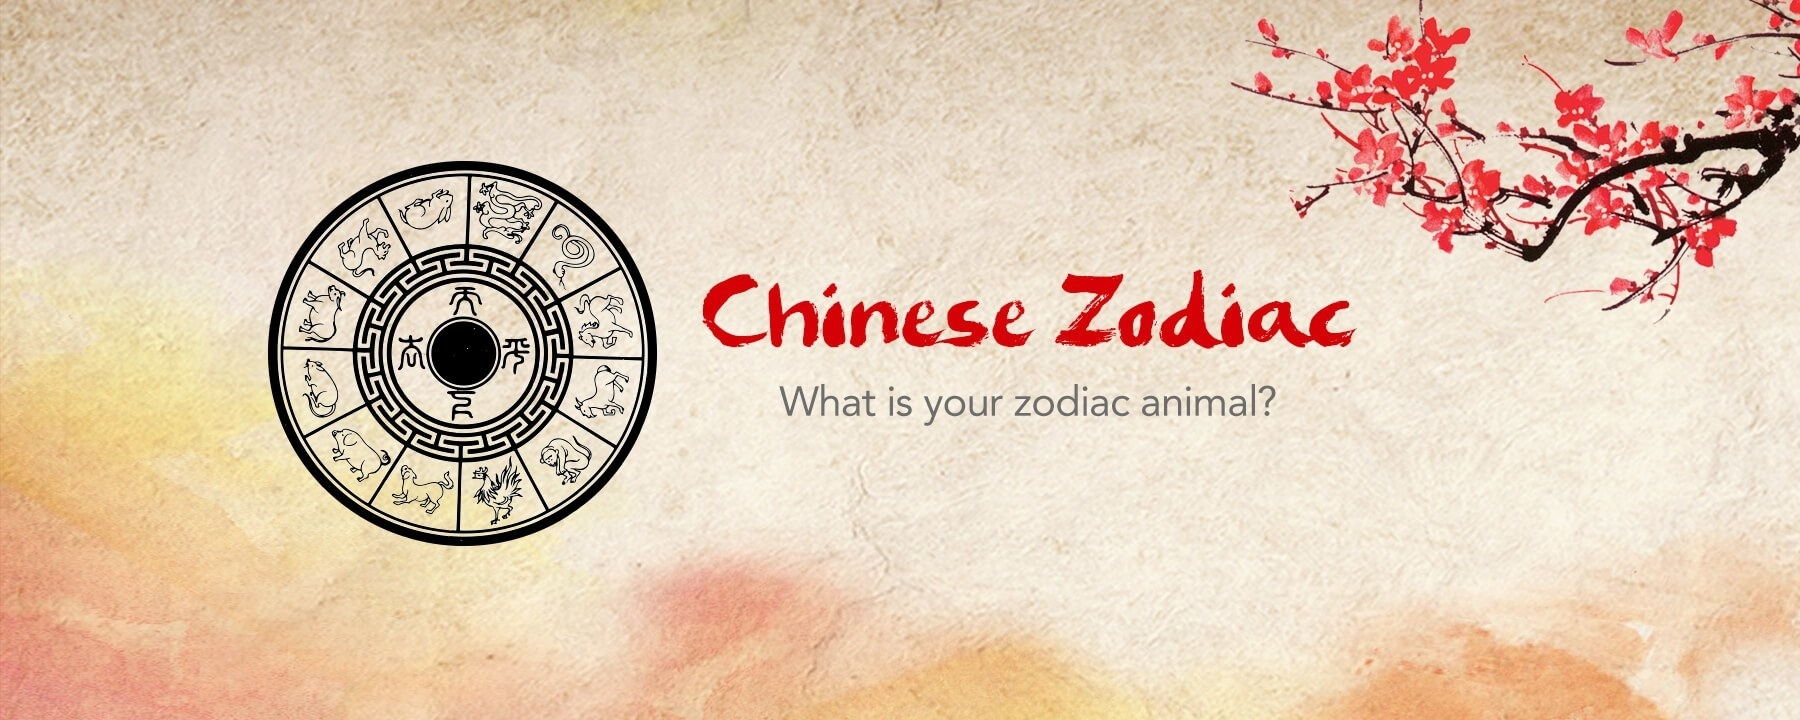 The Chinese Zodiac: What Is Your Zodiac Animal? Why Is The